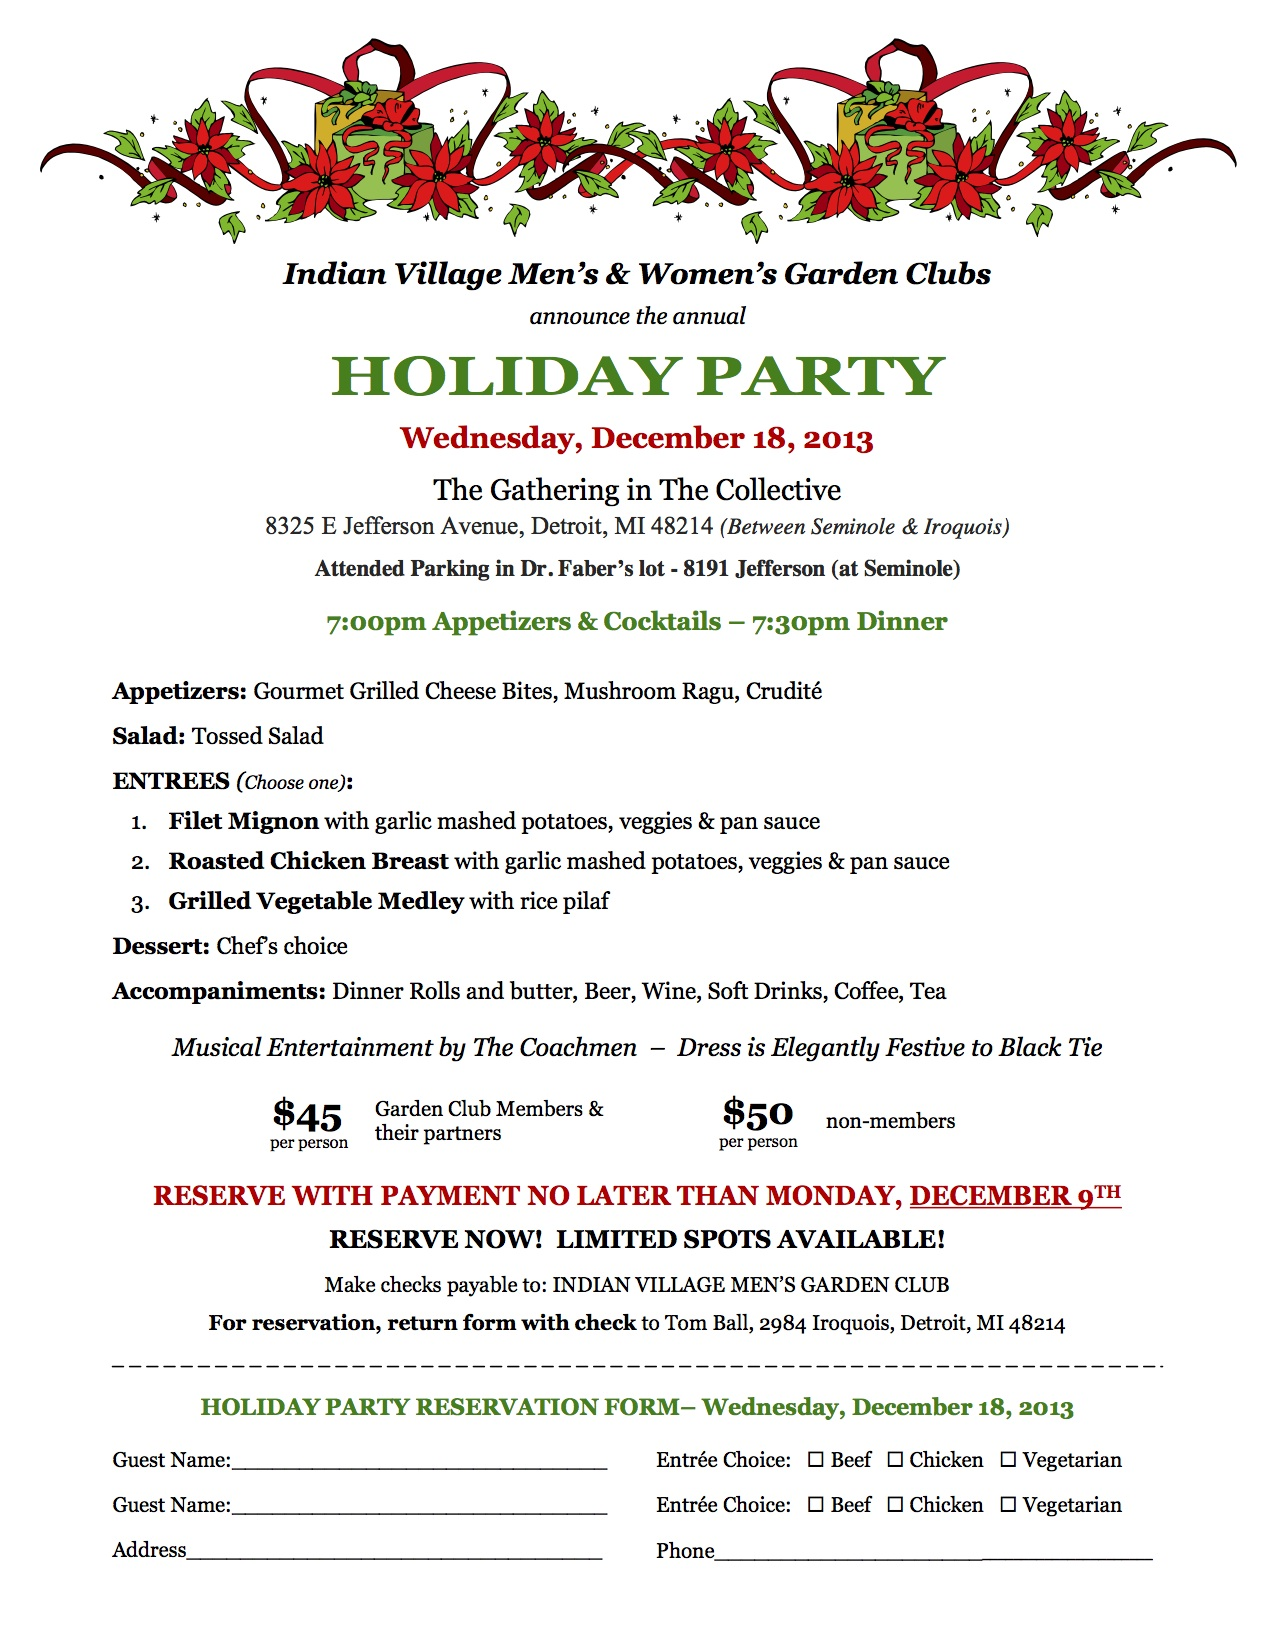 IVMGC-Holiday-flyer-2013-2